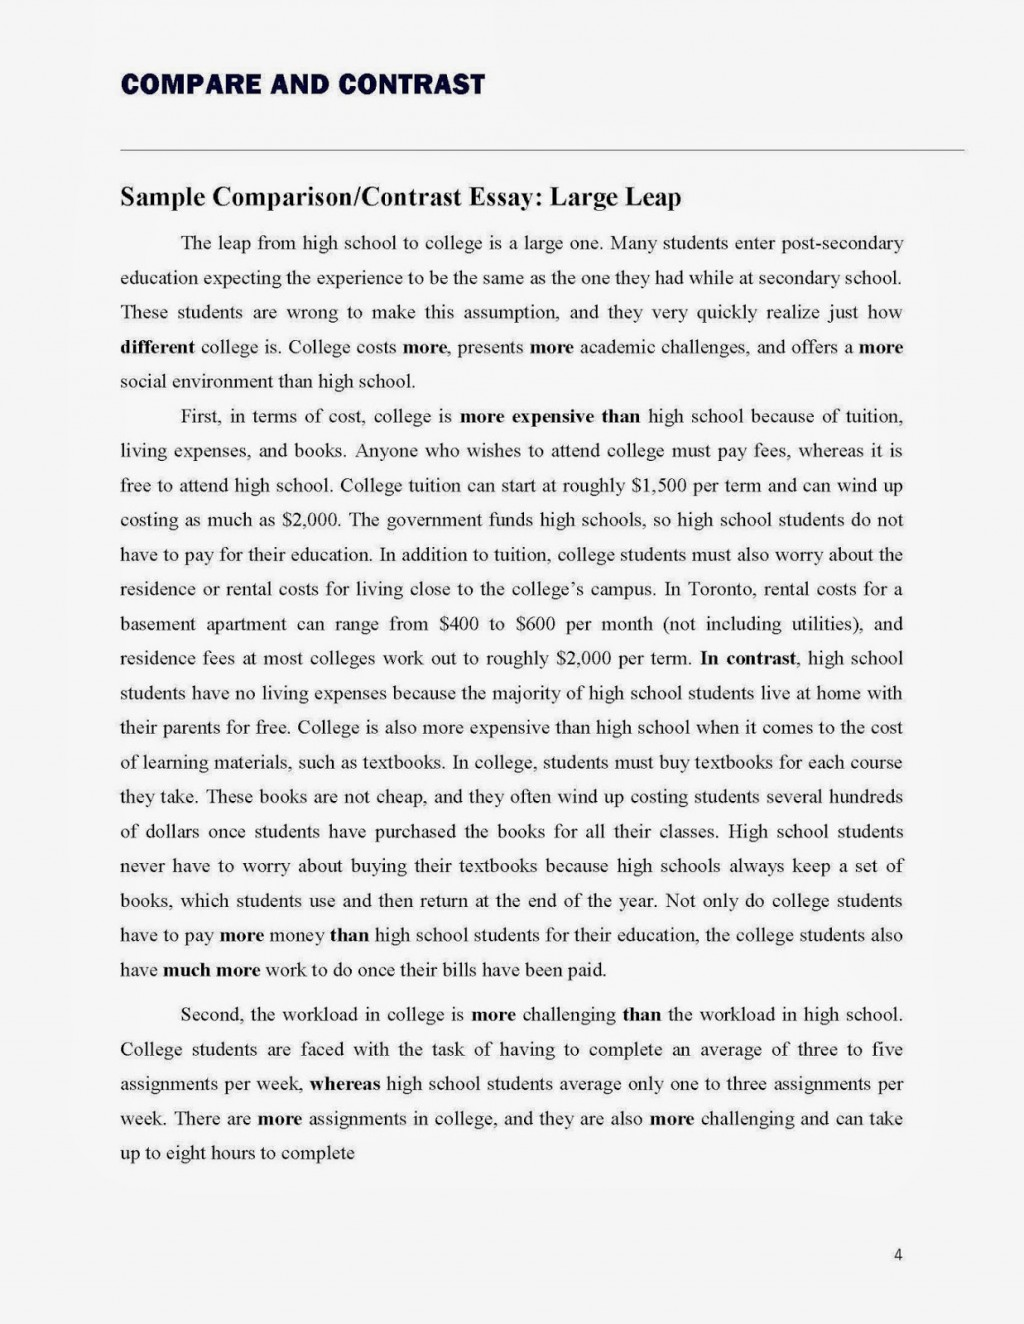 003 Comparison And Contrast Essay Topics Compare20and20contrast20essay Page 4 Unforgettable For High School Compare Prompts Middle Large